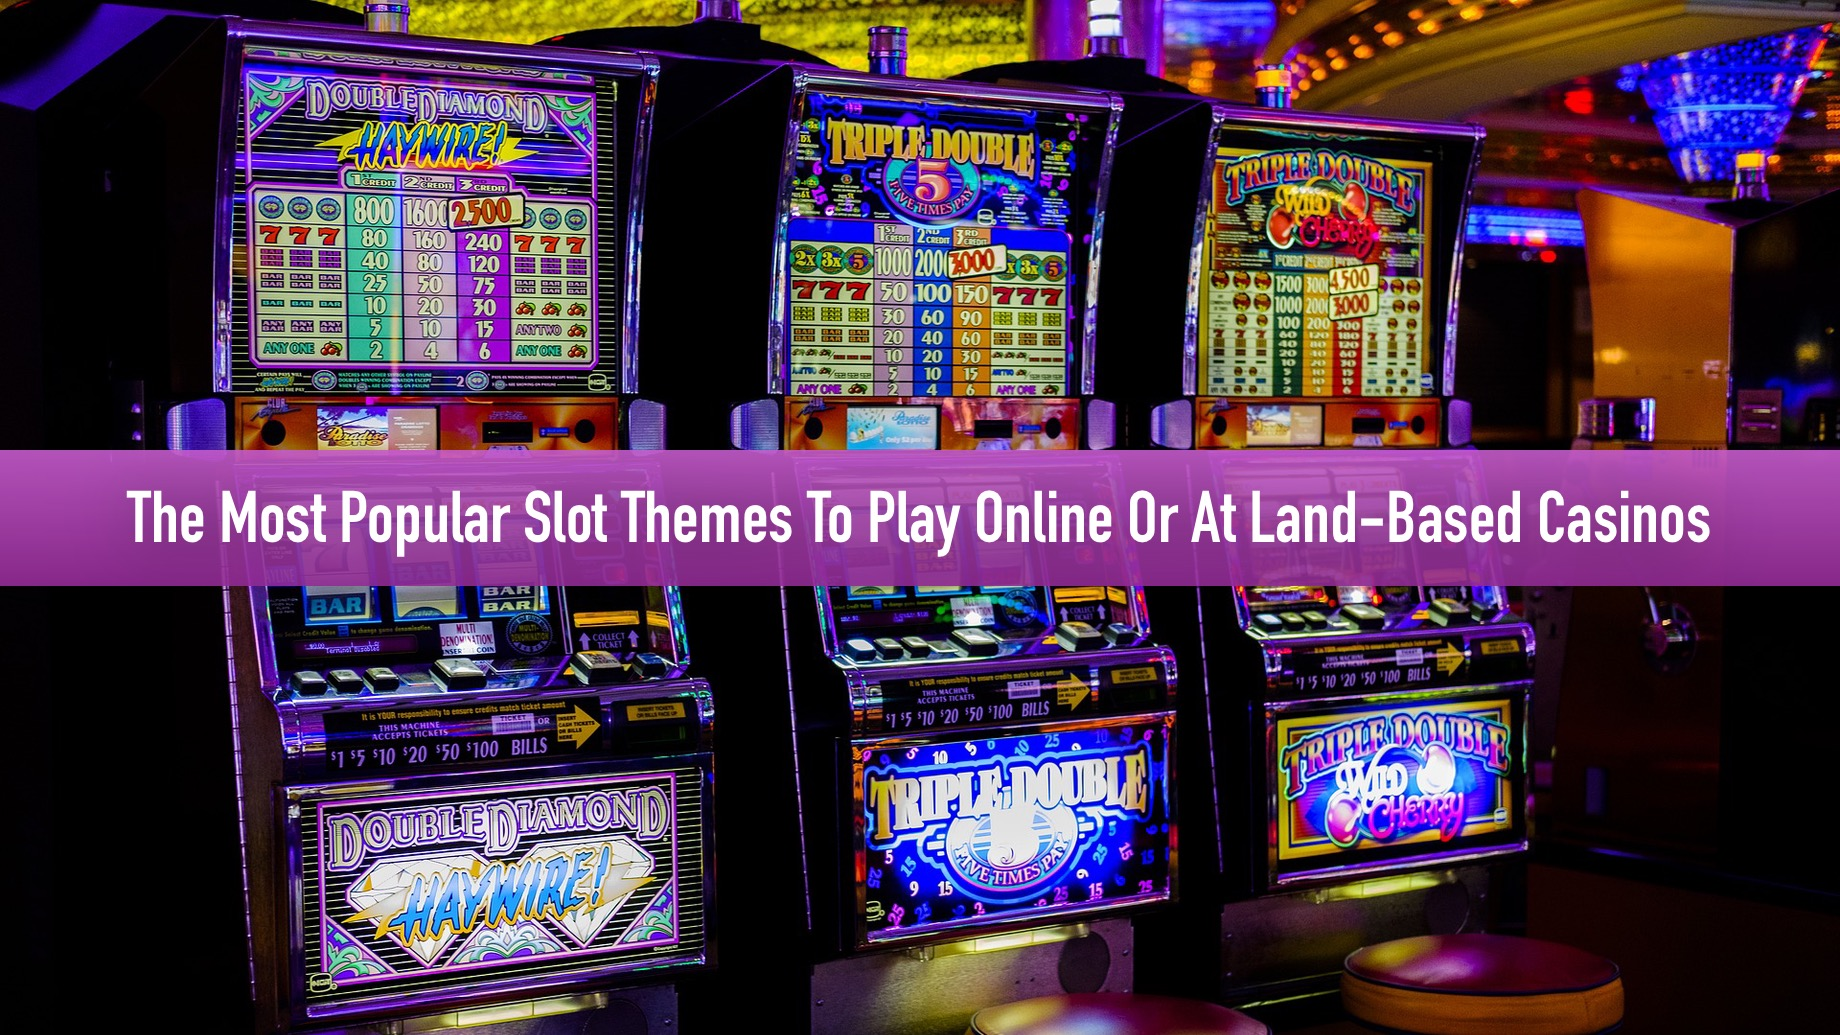 The Most Popular Slot Themes To Play Online Or At Land-Based Casinos